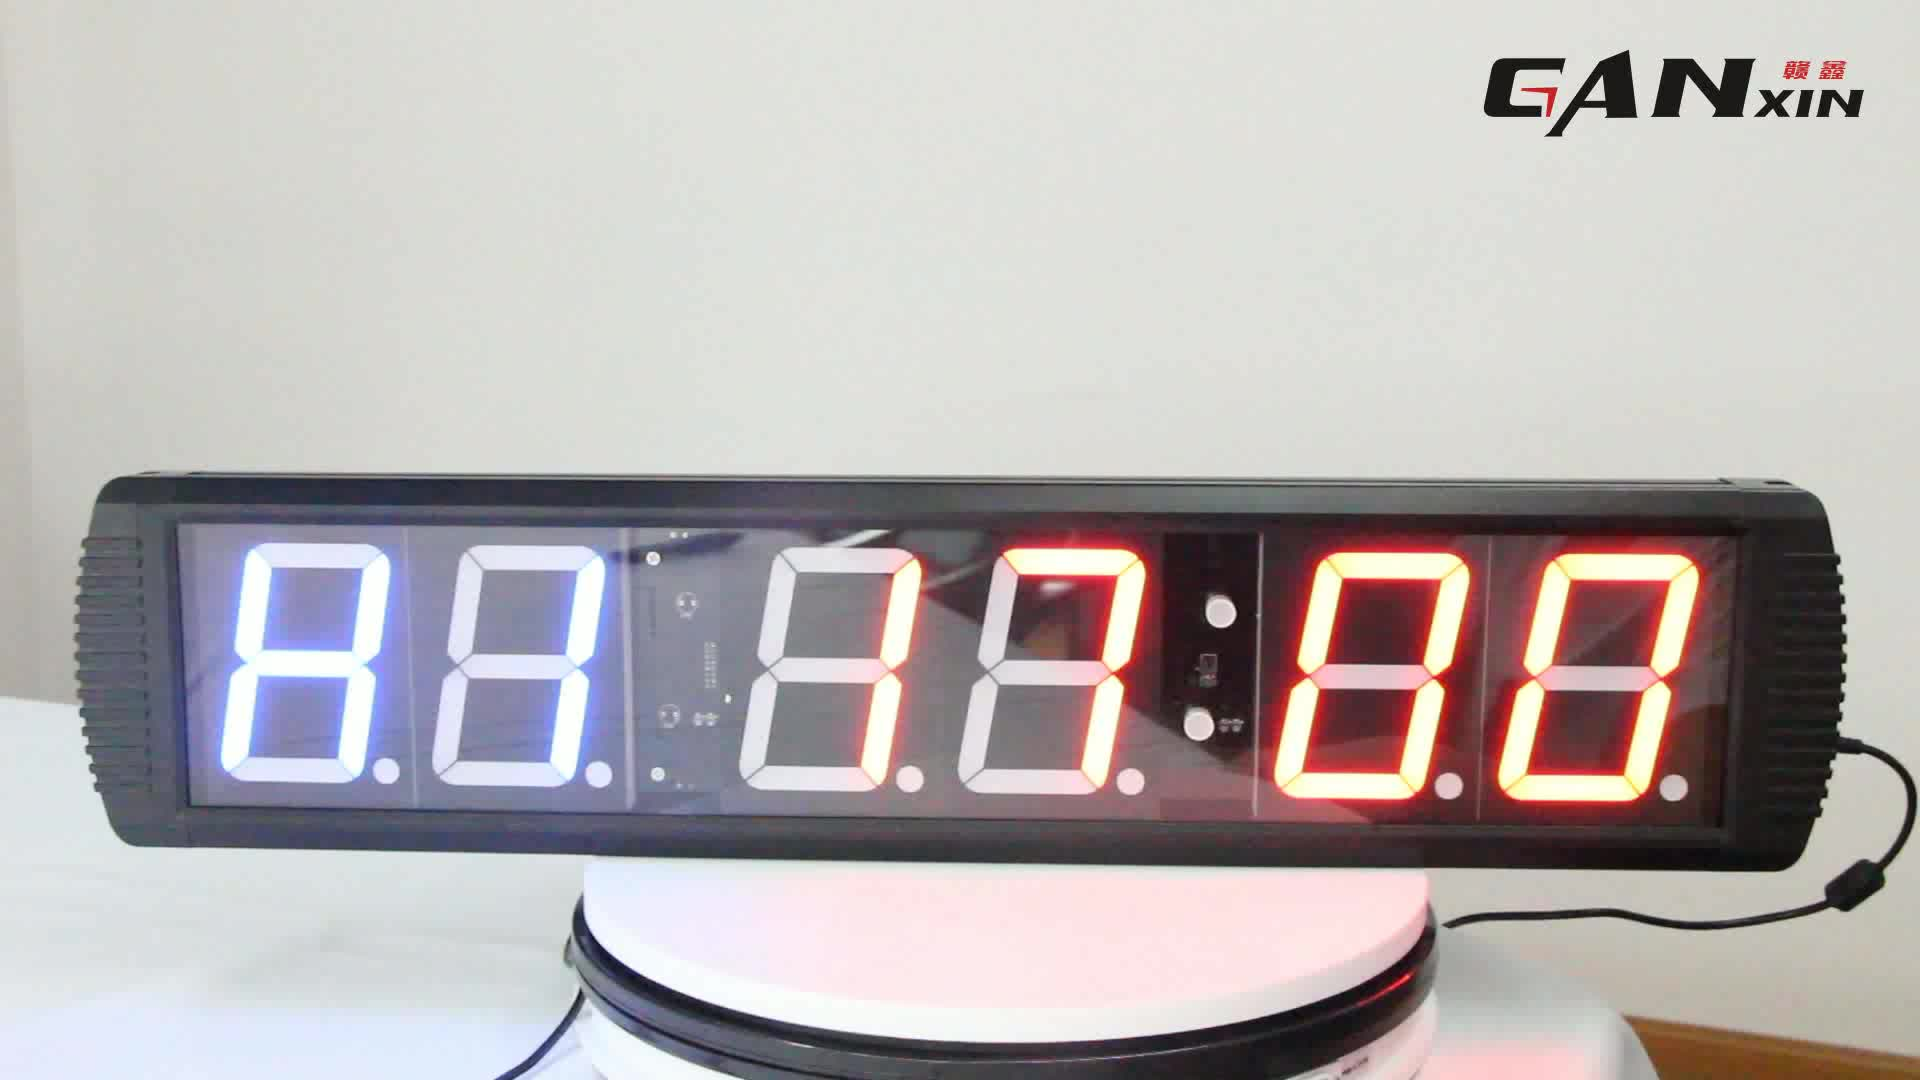 [Ganxin]Customized 4'' Large Interval Timer Indoor Use Alibaba Gym Equipment Led Timer